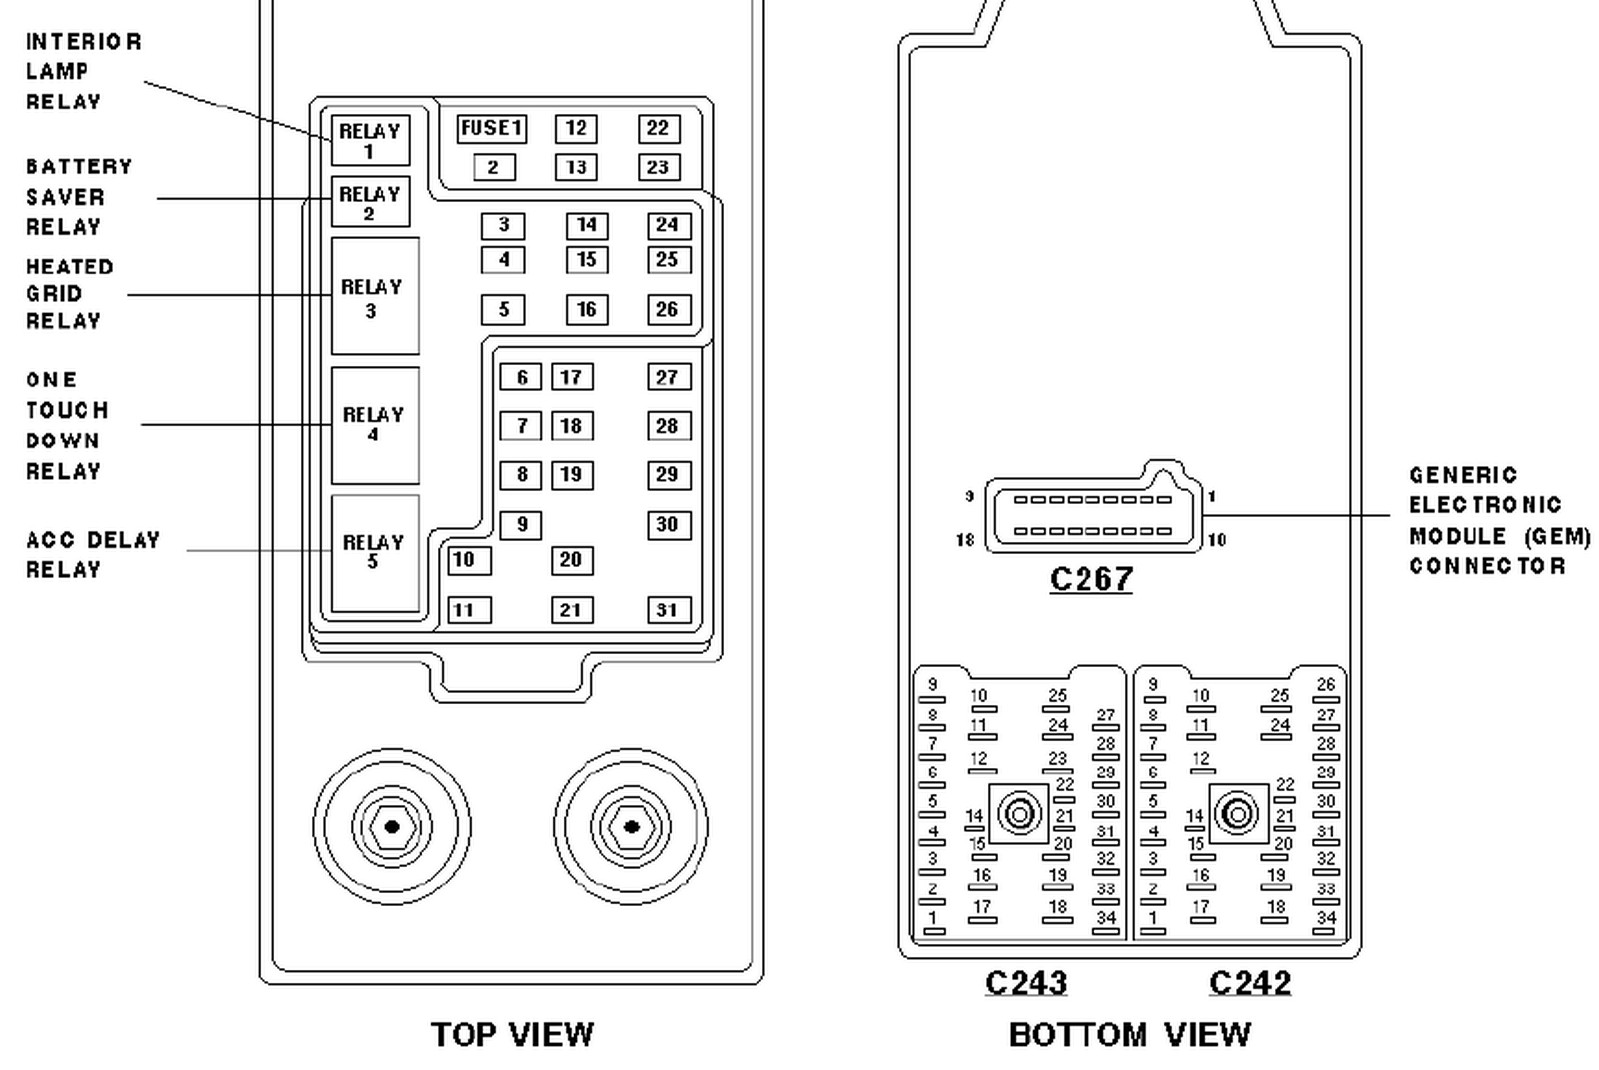 hight resolution of 1997 ford expedition fuse box diagram image details ford truck f 750 fuse diagram 1997 ford